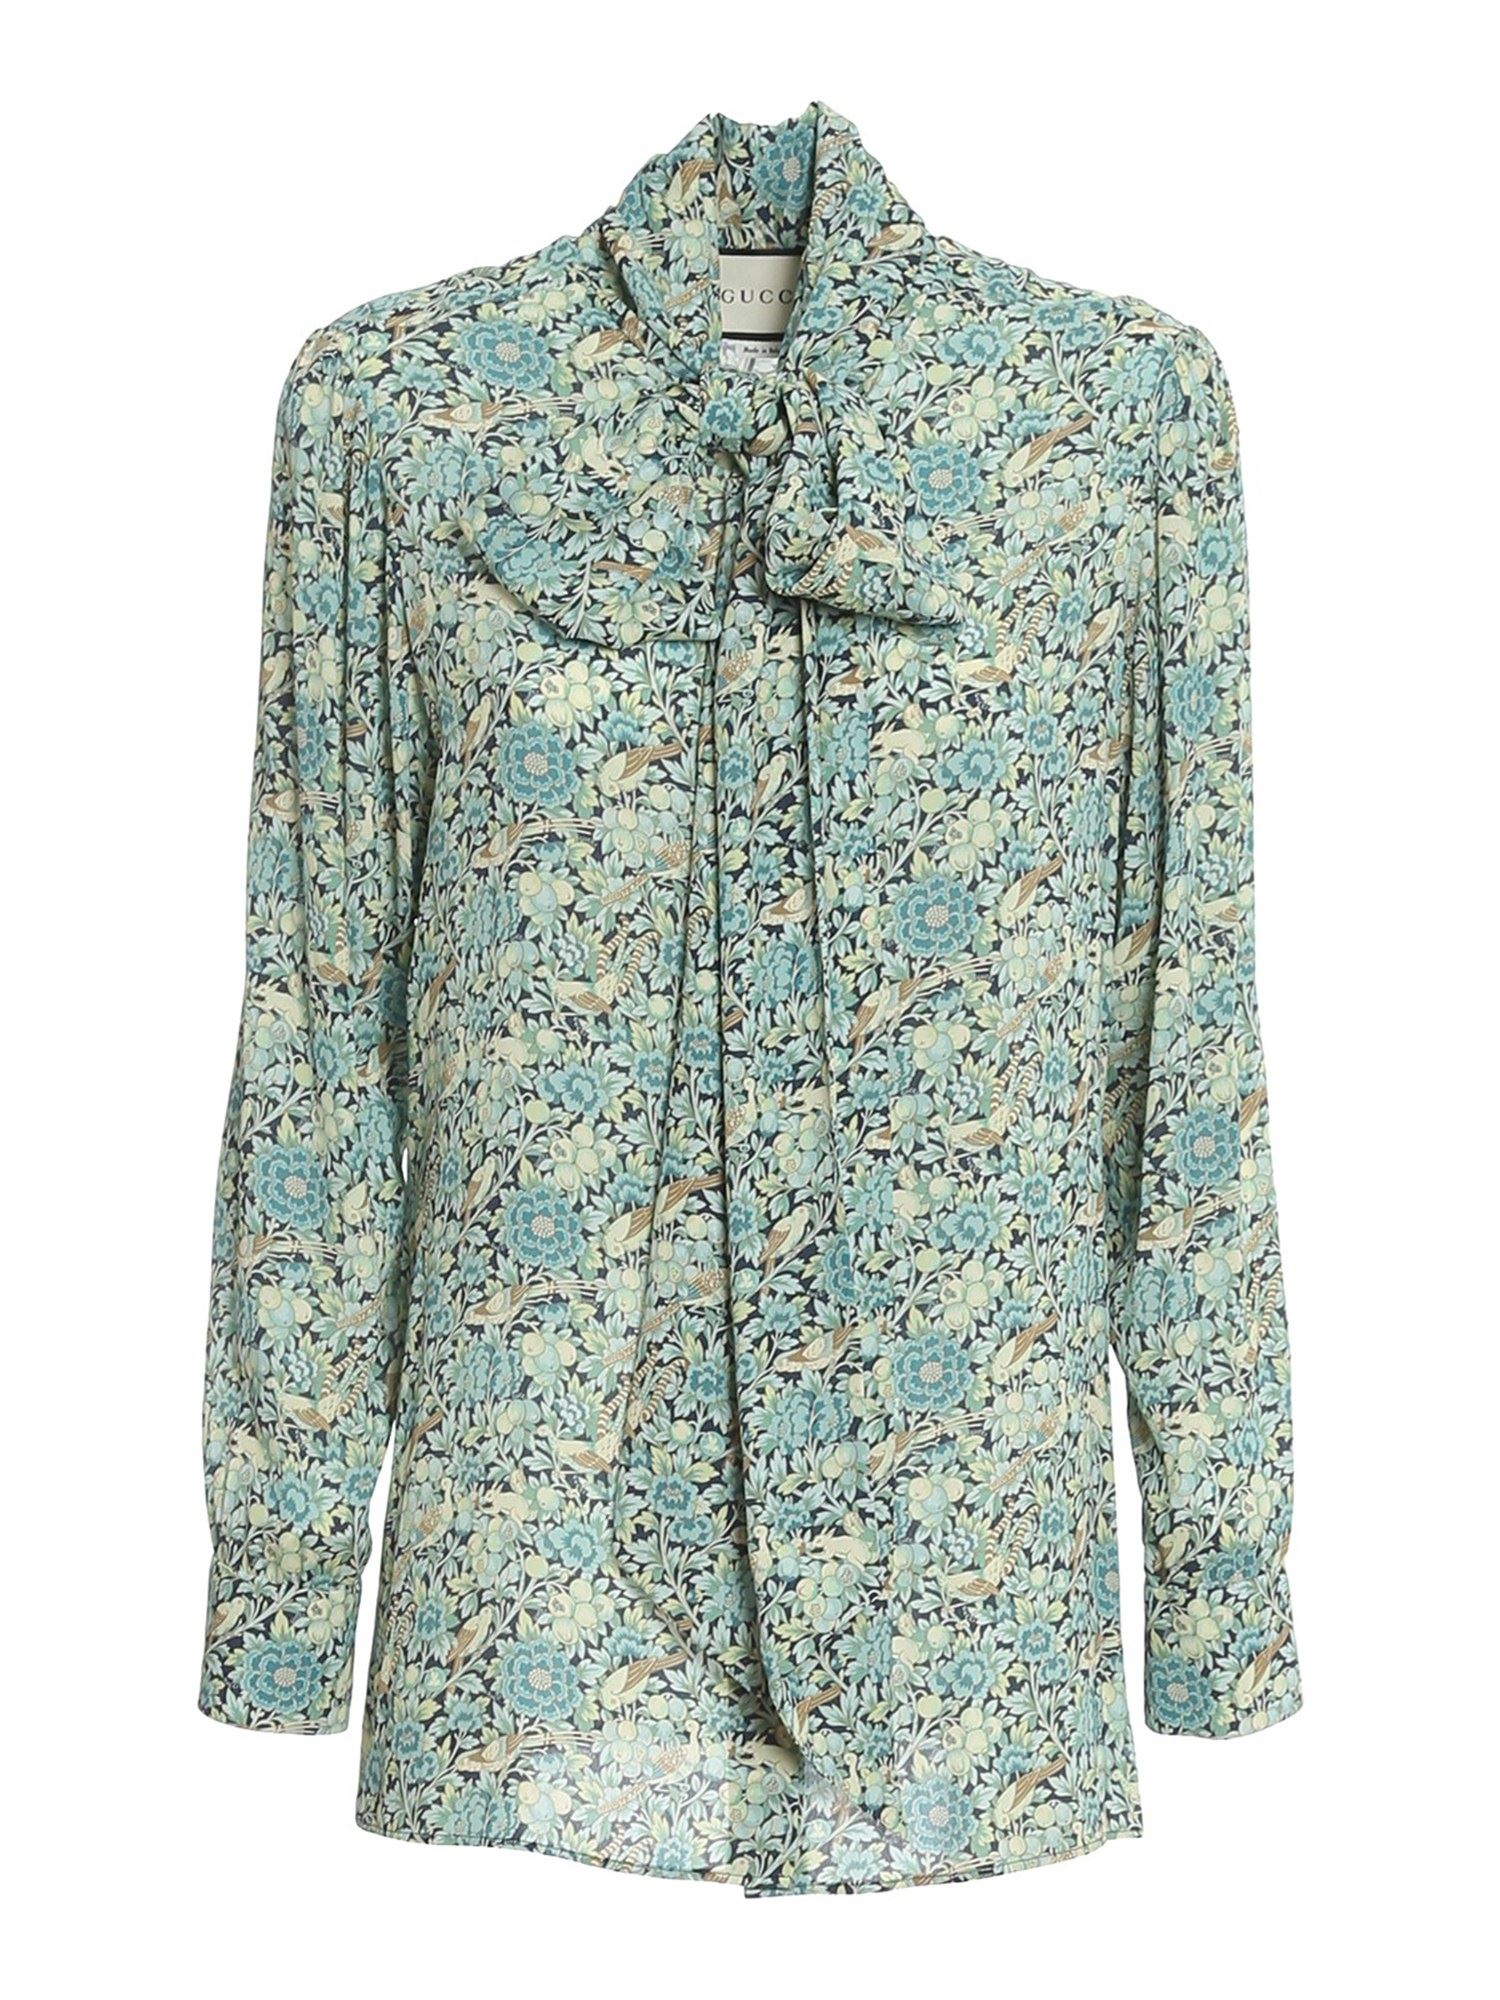 GUCCI LIBERTY PRINT BLOUSE IN LIGHT BLUE